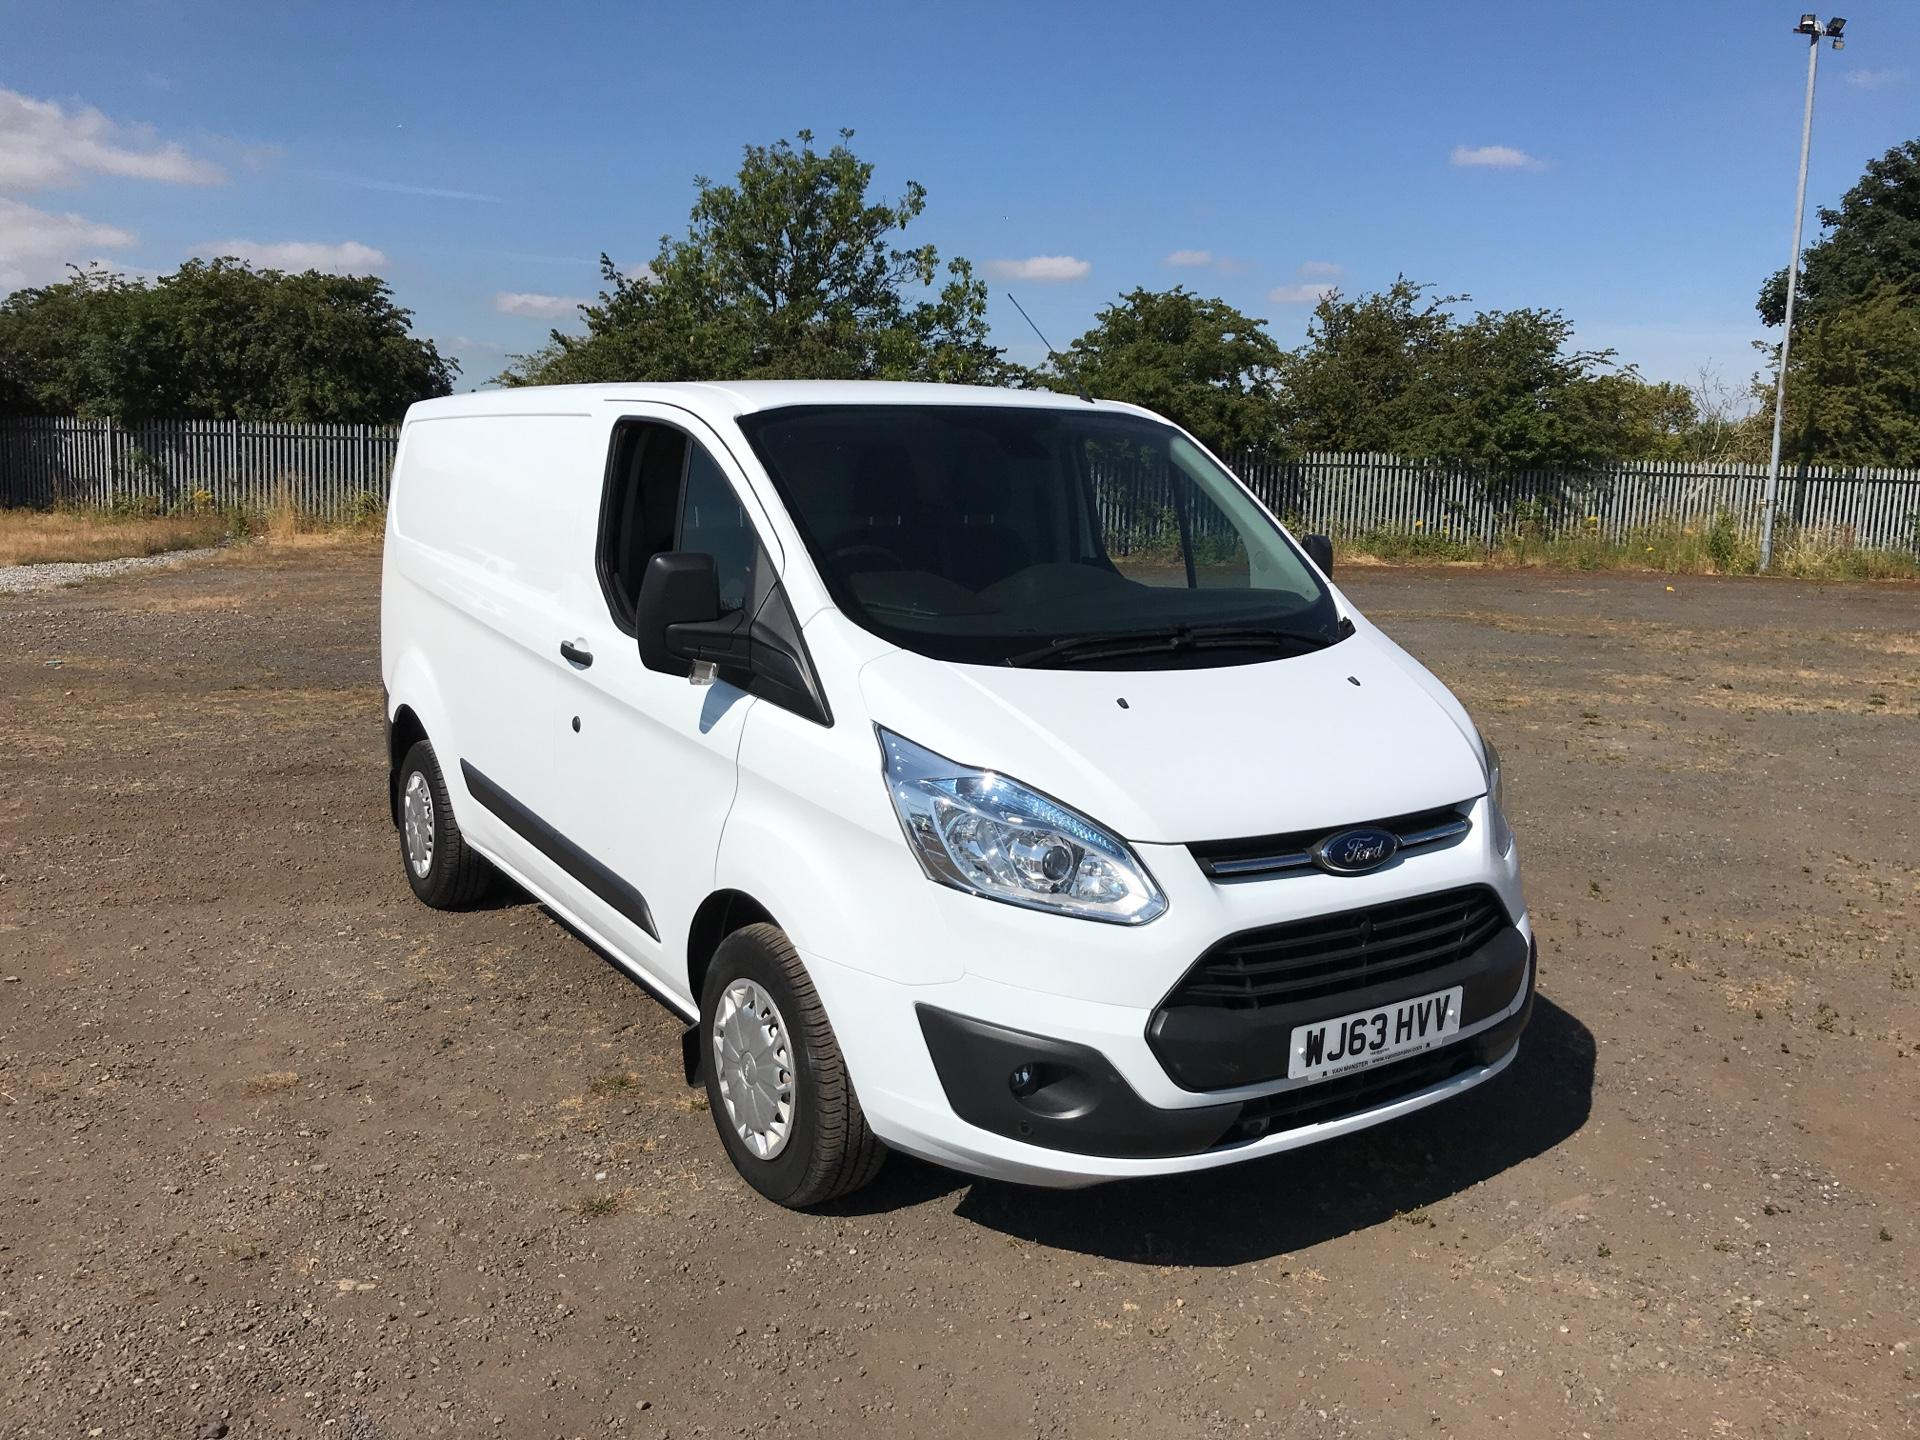 2013 Ford Transit Custom L1 270 2.2 Tdci 125Ps Low Roof Trend Van (WJ63HVV)